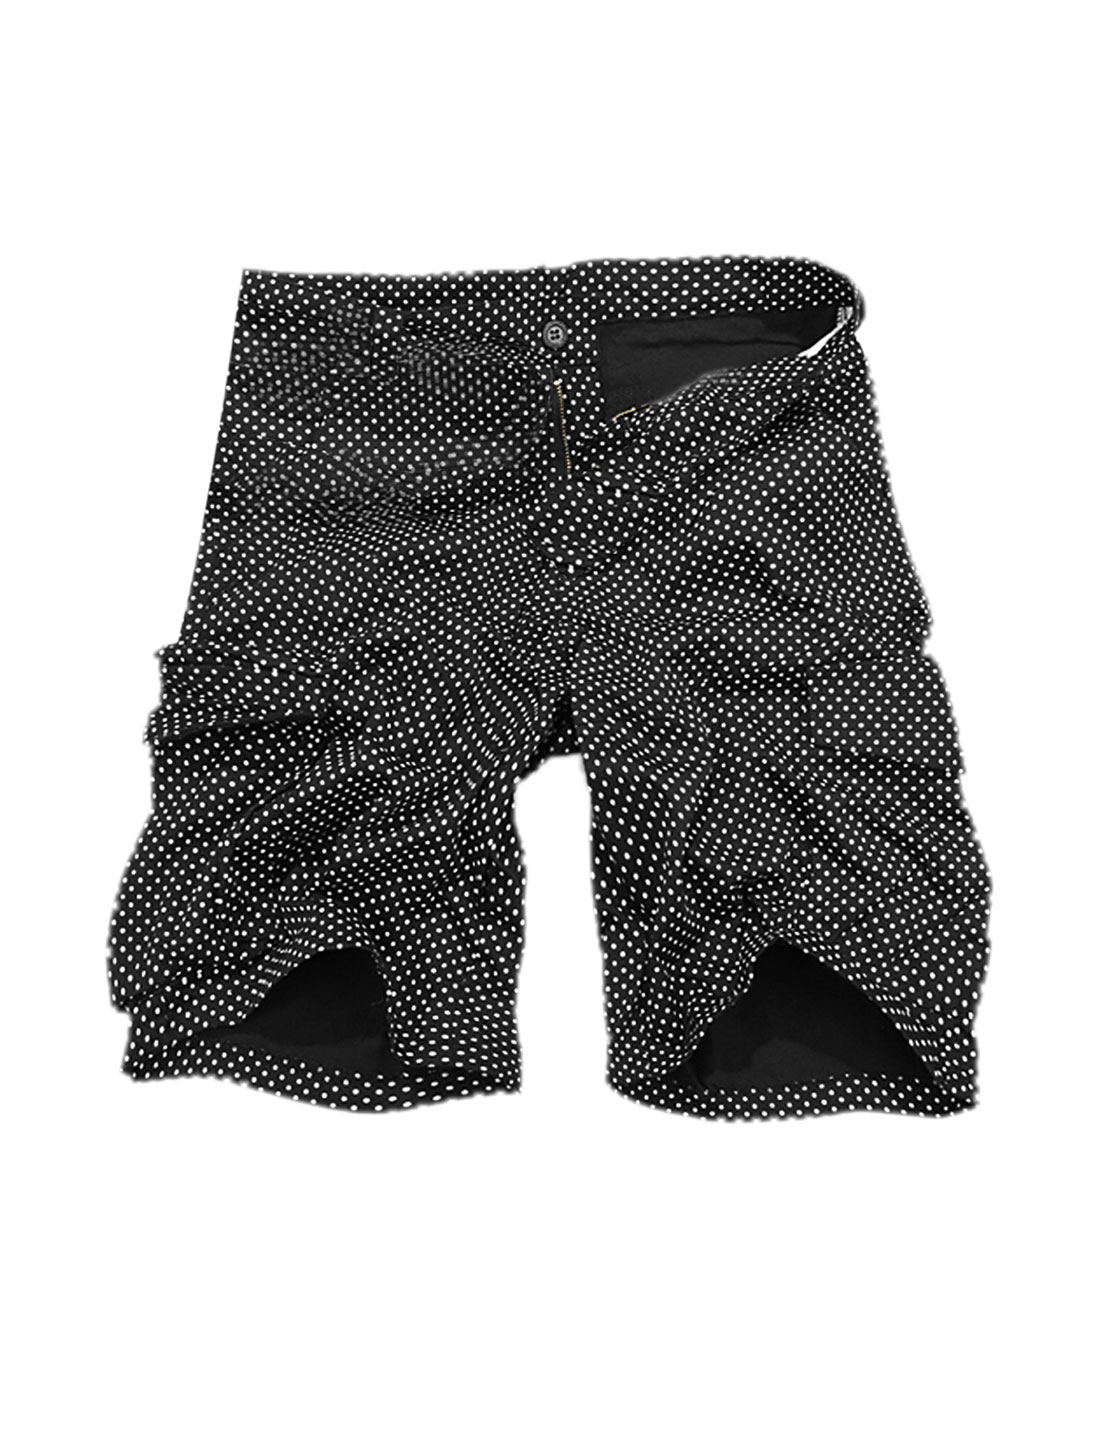 Man New Fashion Polka-Dotted Prints Loose Fit Black Casual Short Pants W32